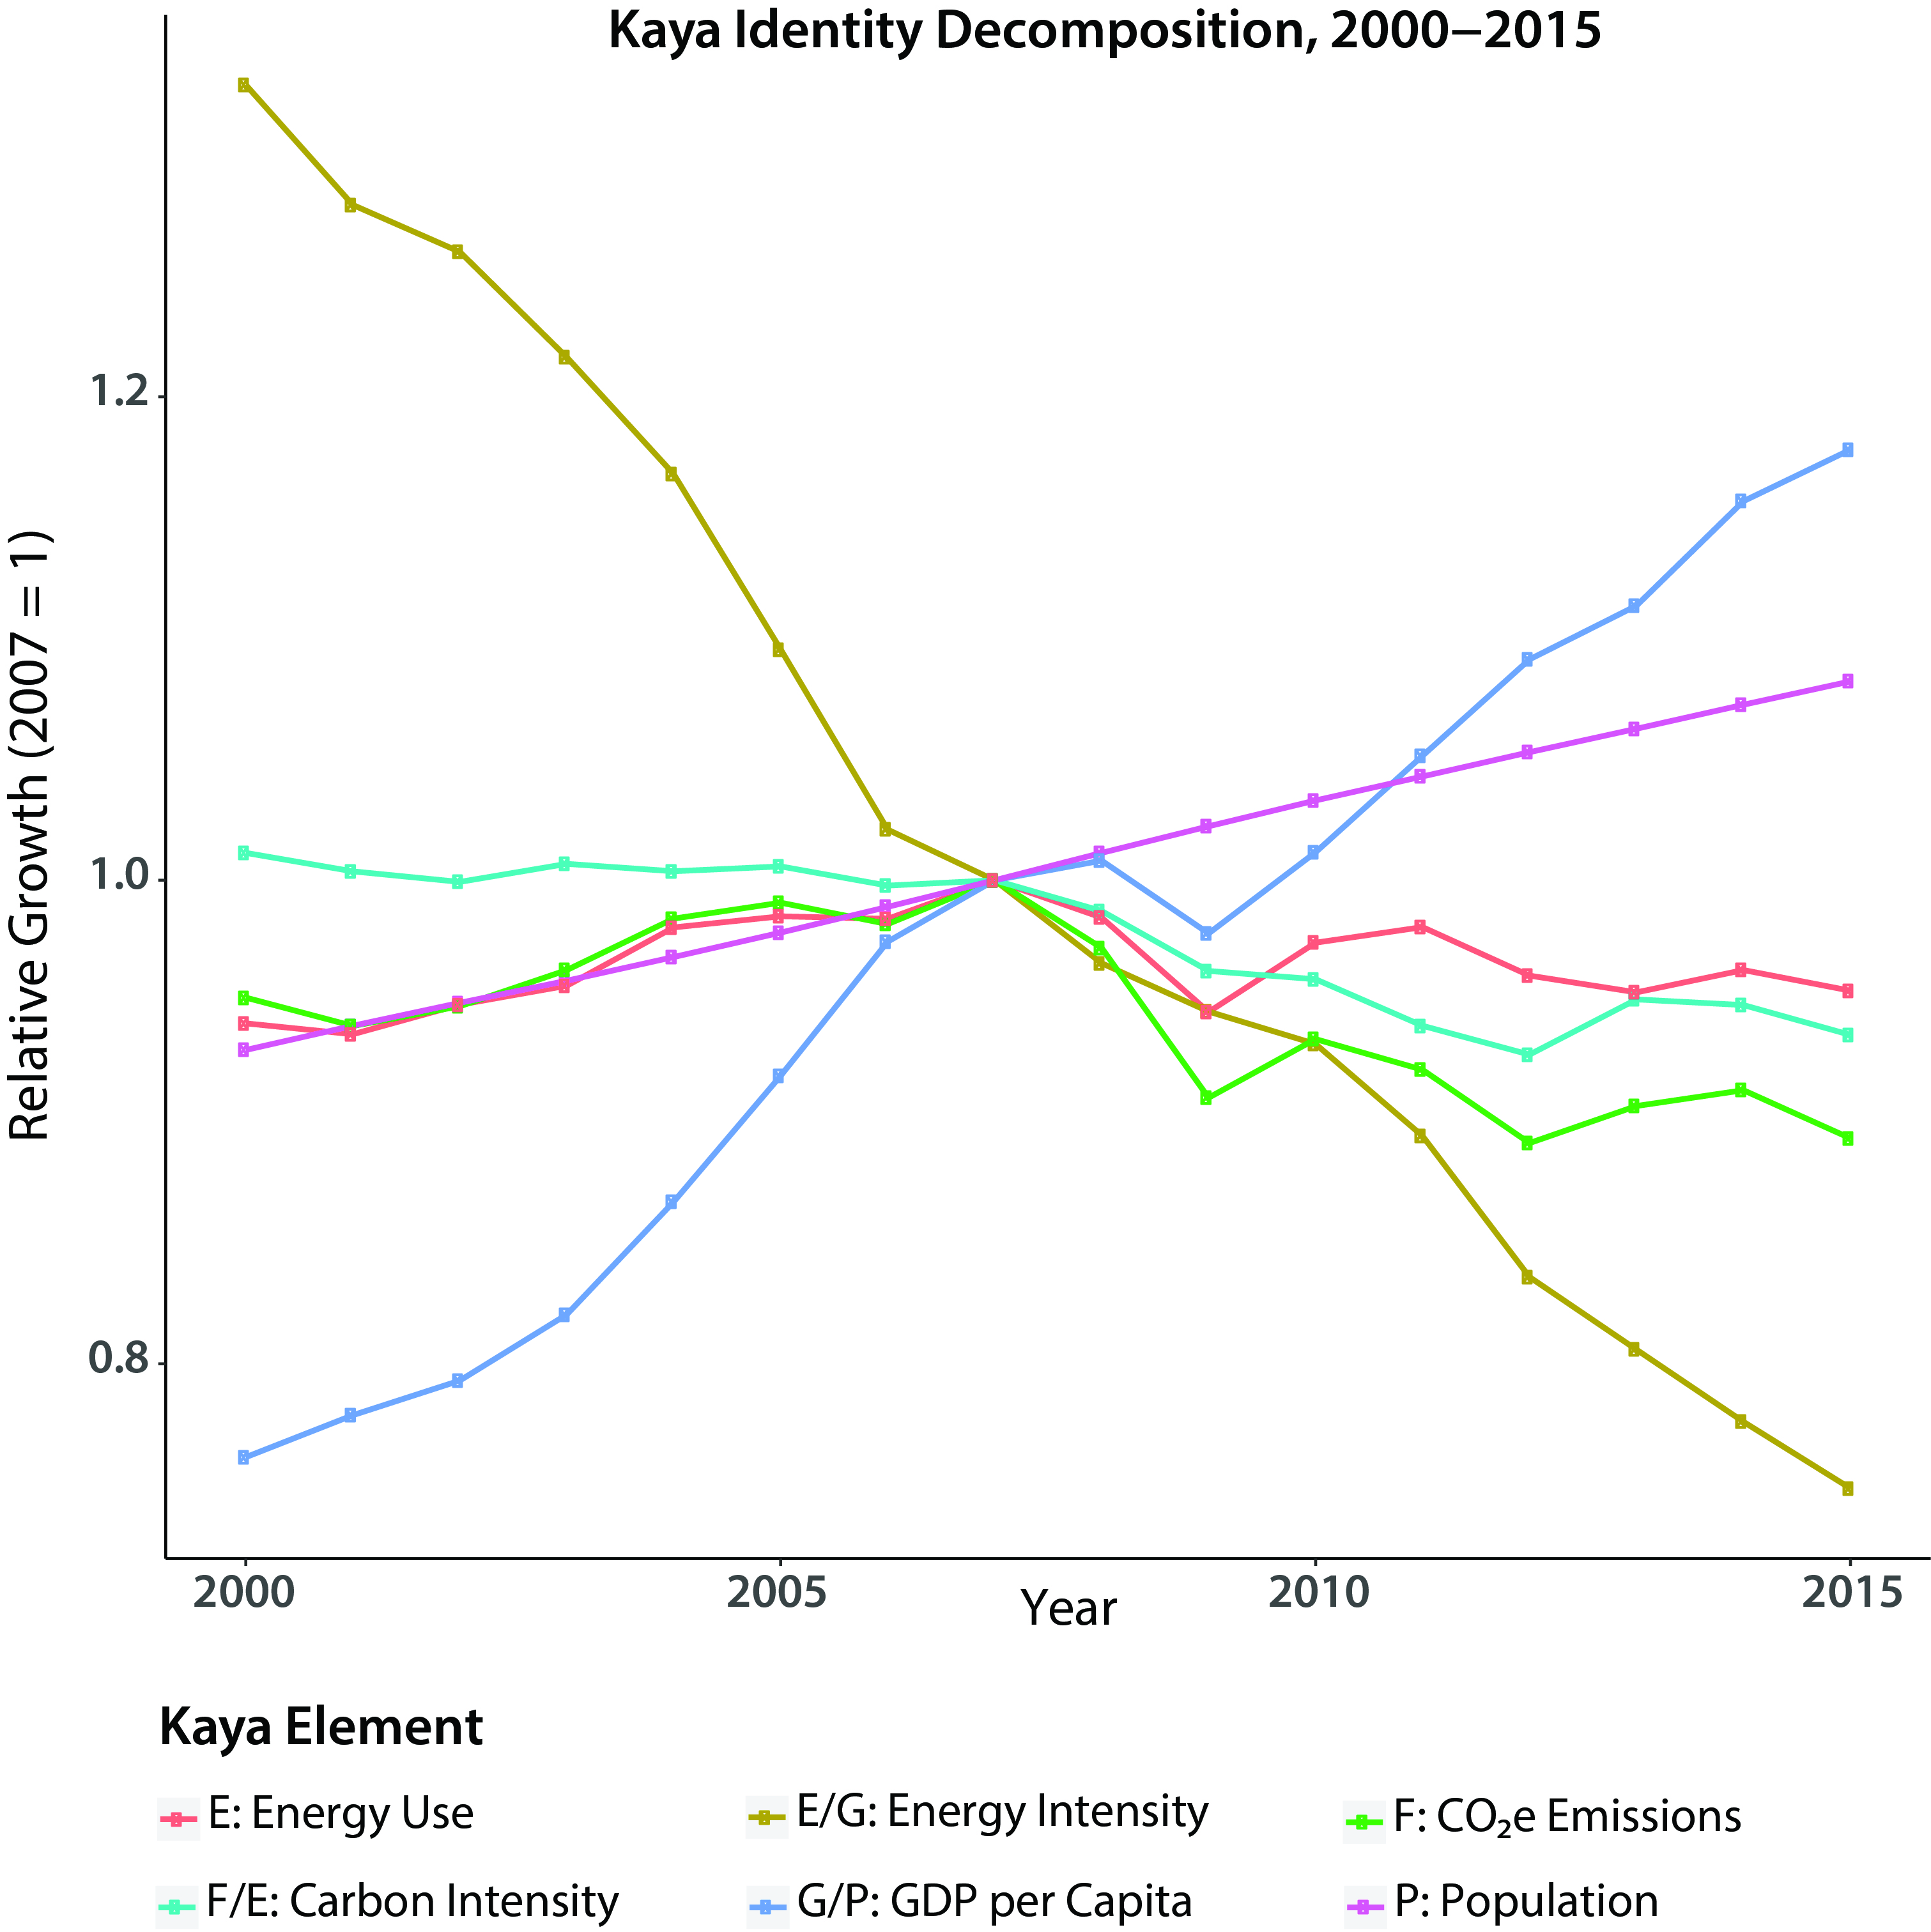 Energy Systems - Second State of the Carbon Cycle Report